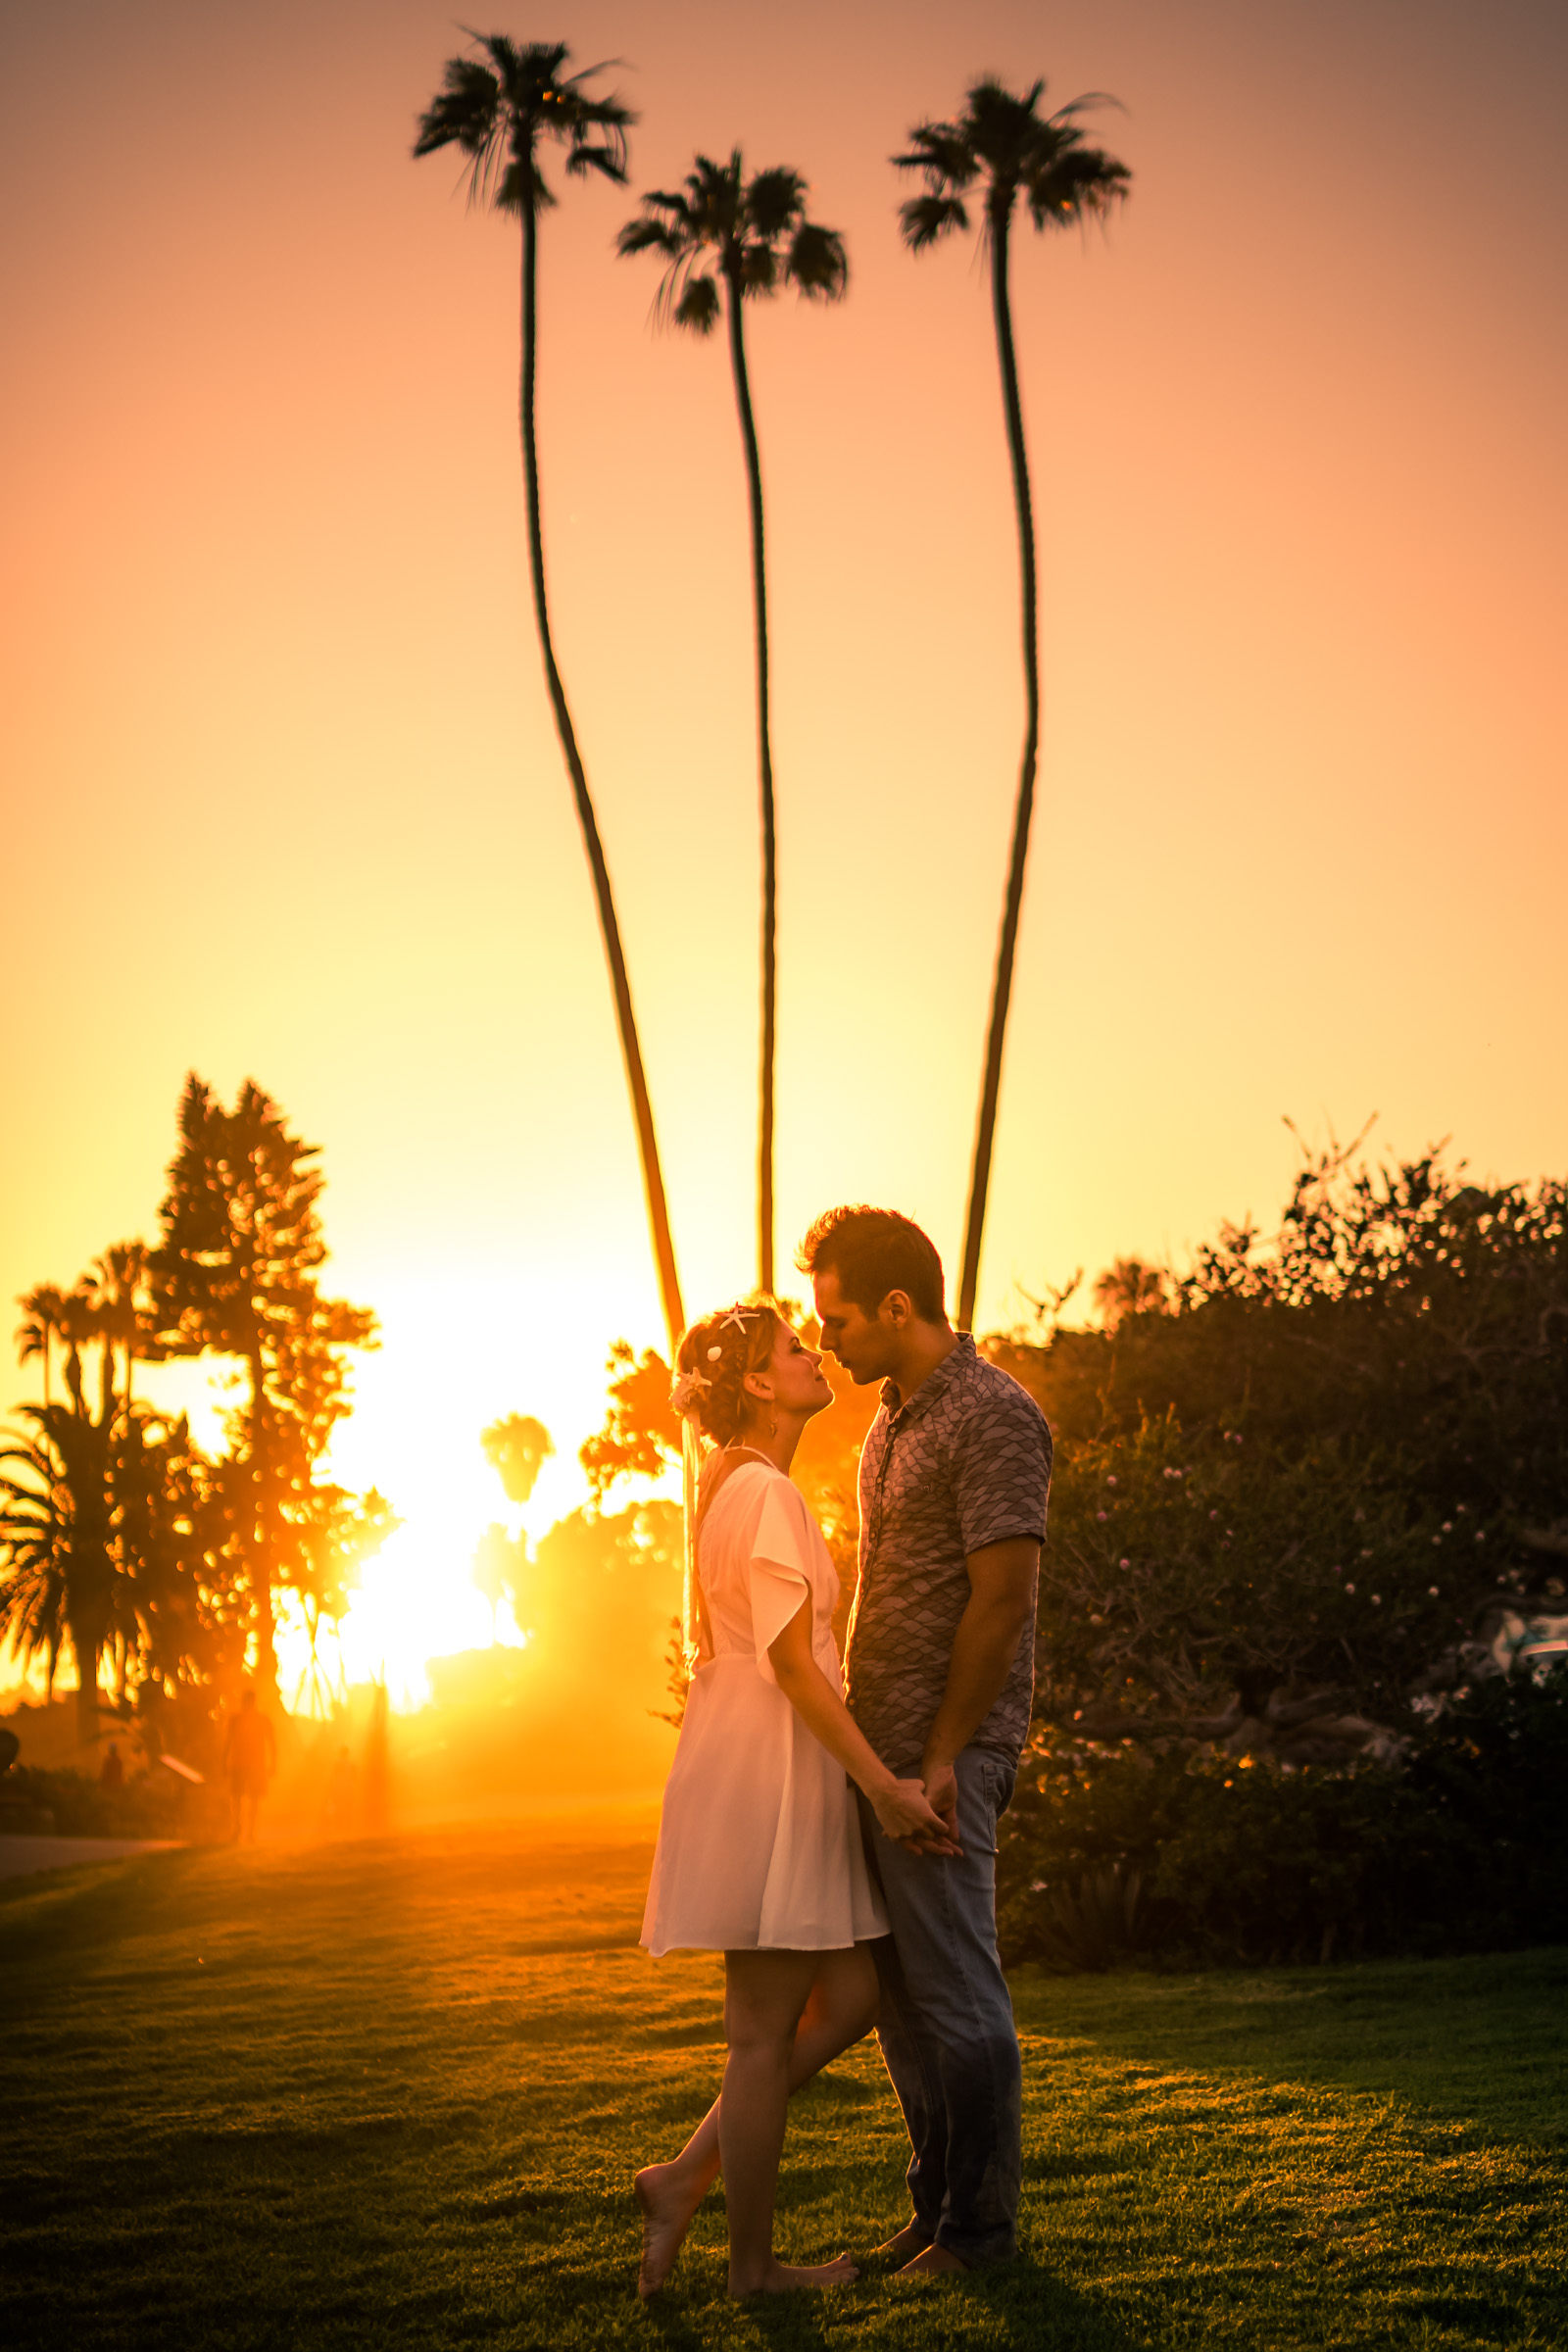 1__Bruno-Amanda-laguna-beach-engagement_Joseph-Barber-Weddings_3159.jpg